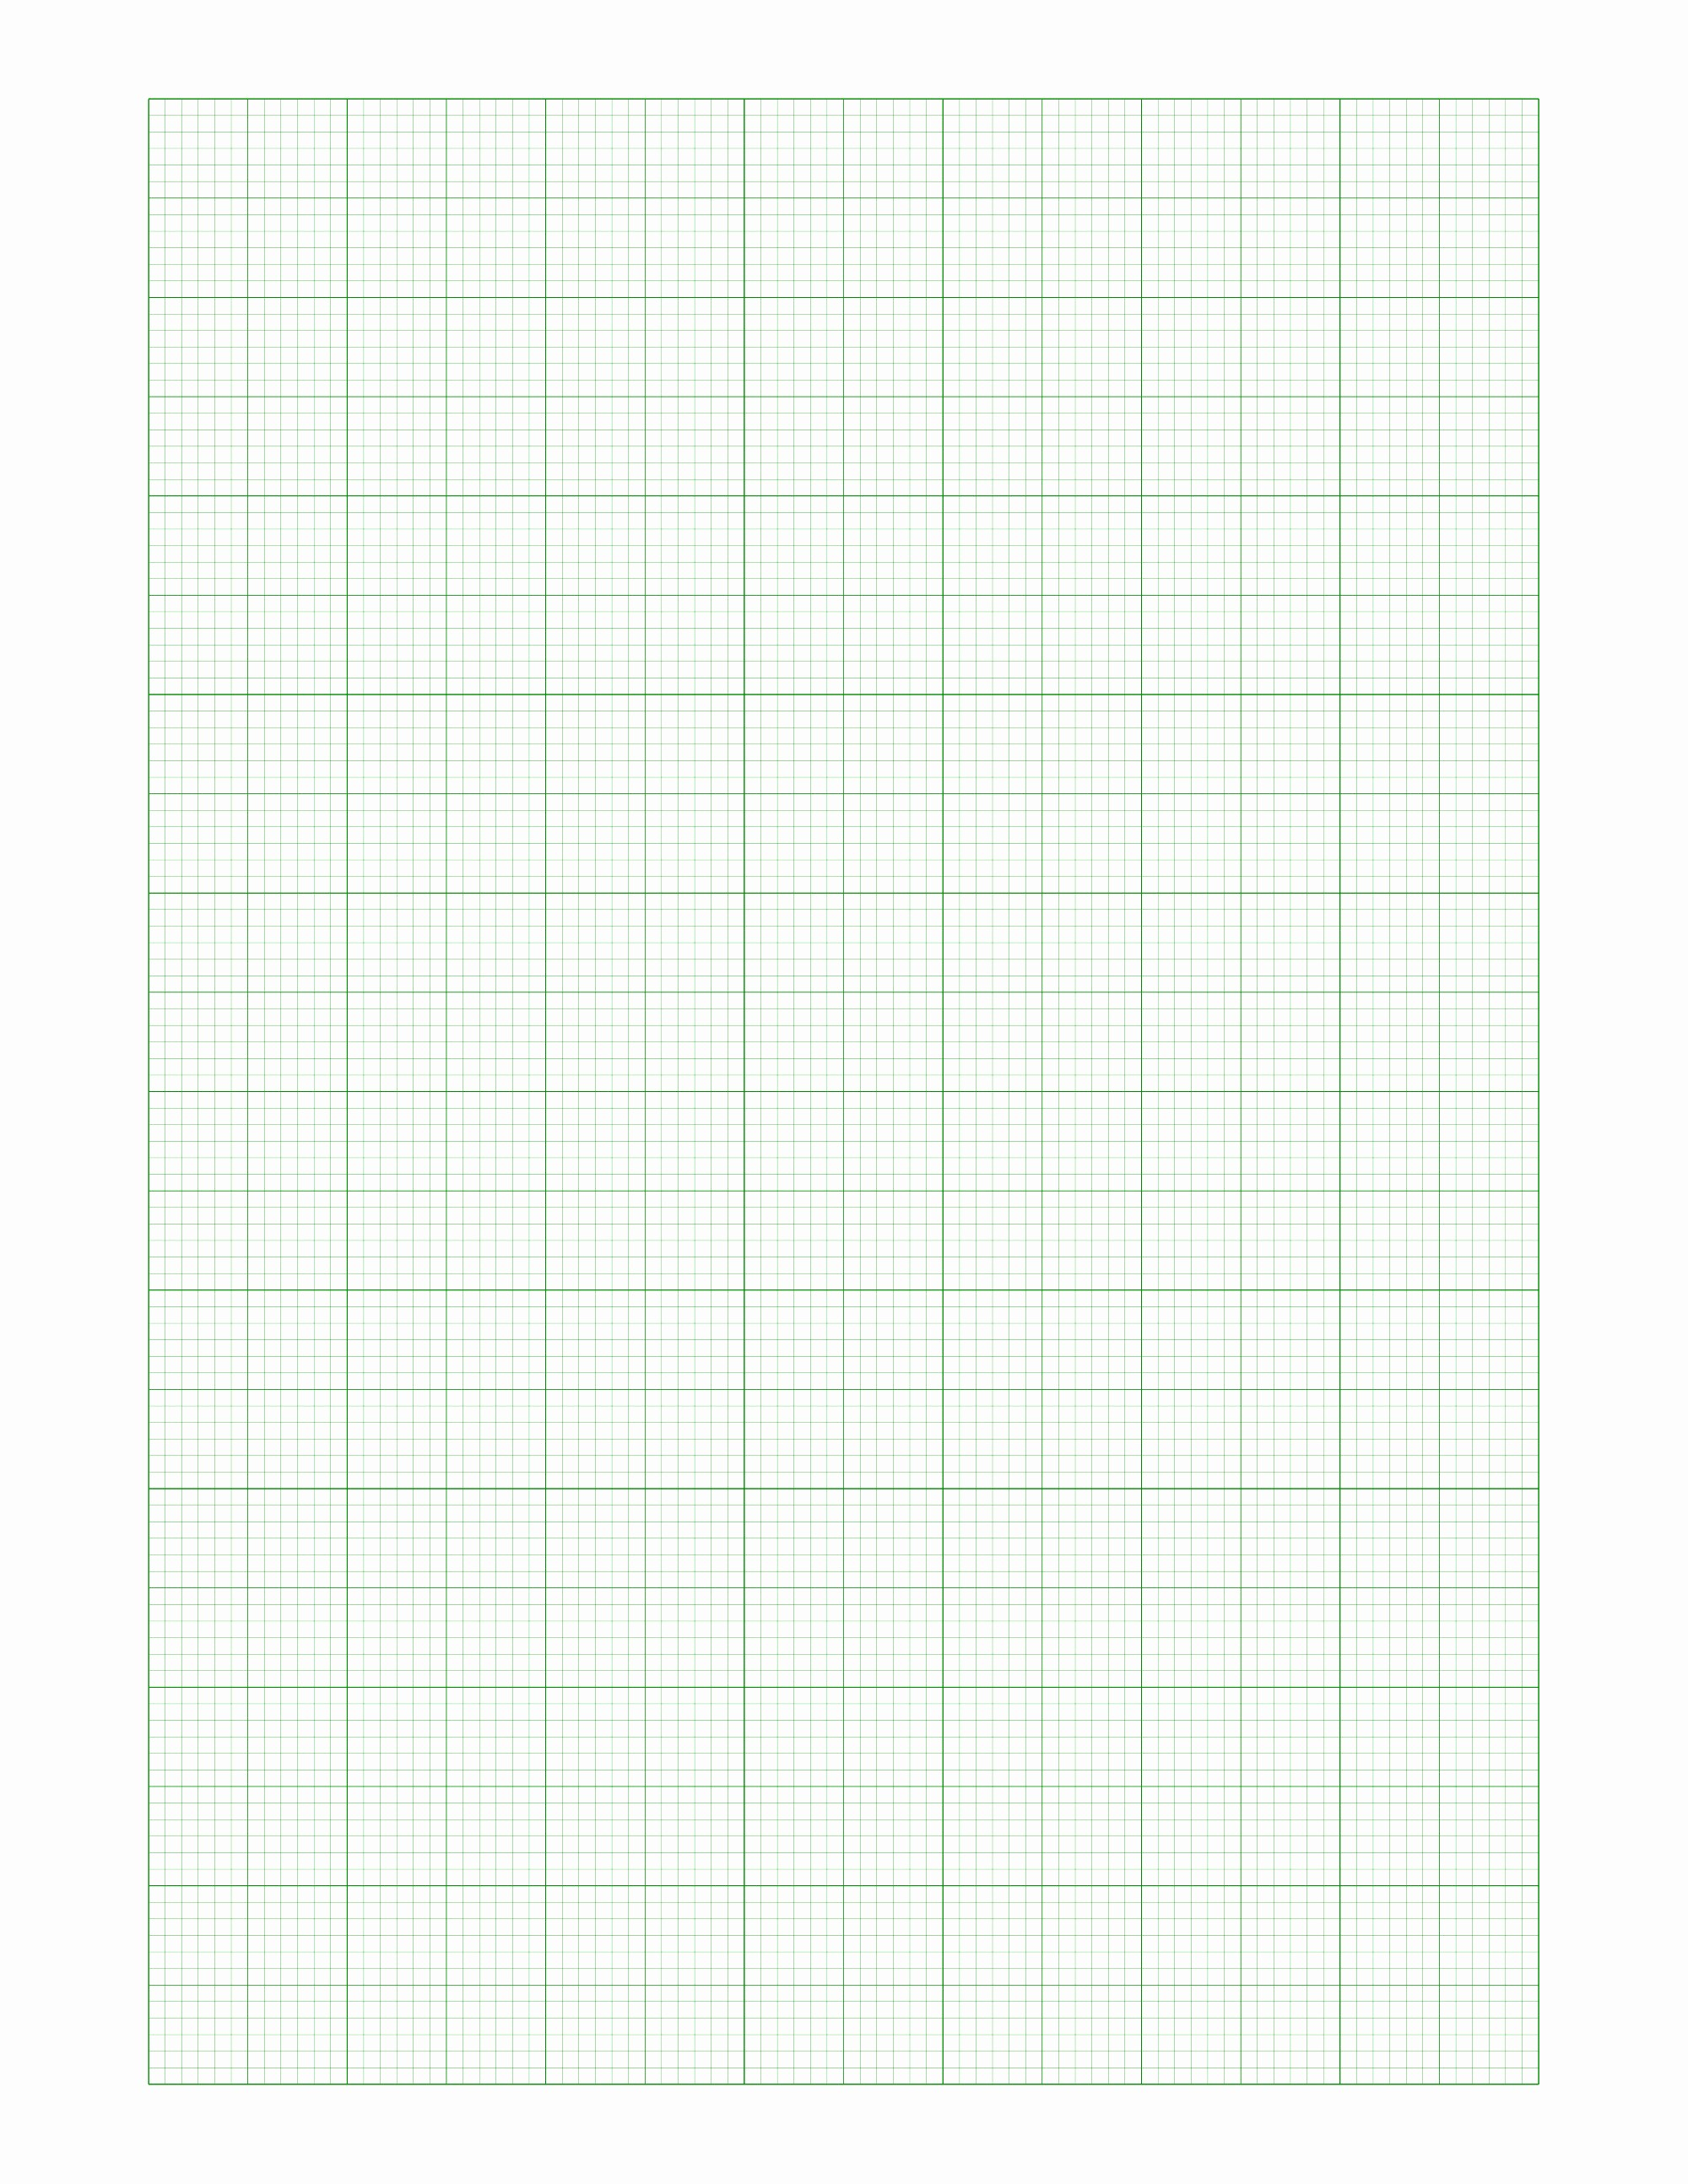 Graph Paper Template for Word Luxury Microsoft Word Graph Paper Template Ideasplataforma